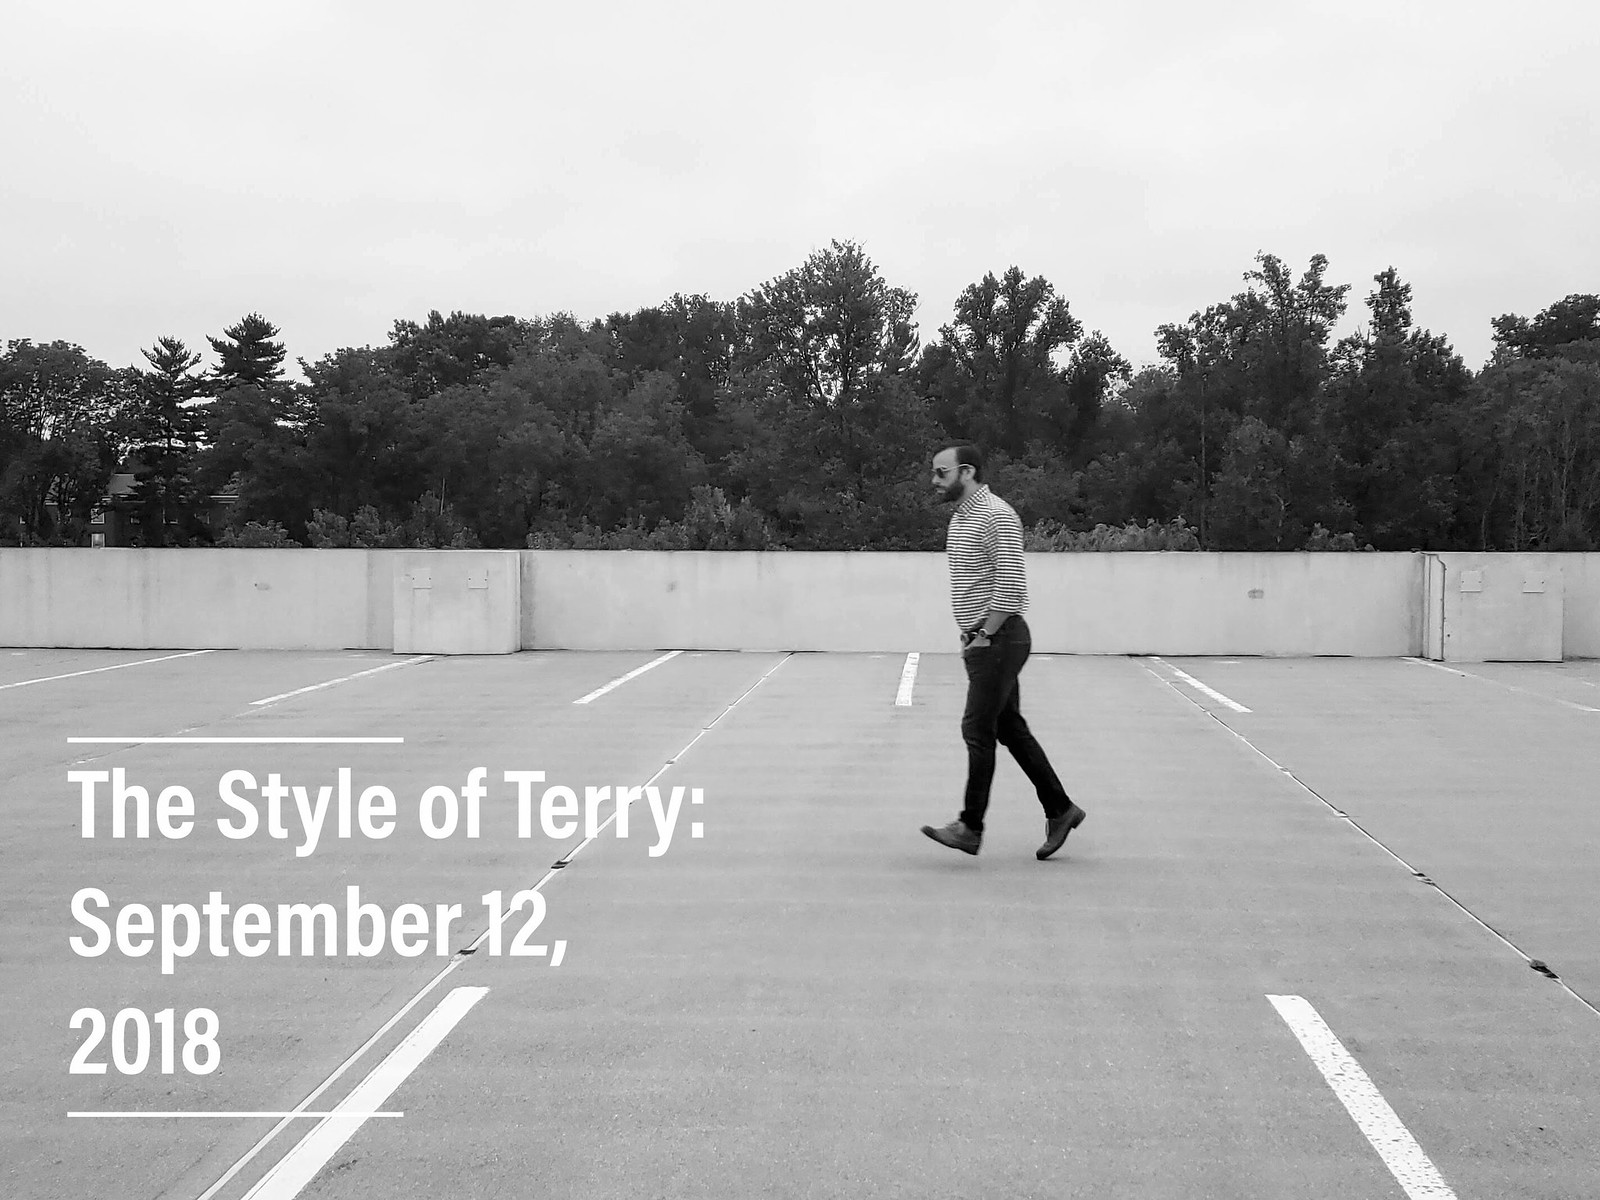 The Style of Terry: 9.12.18